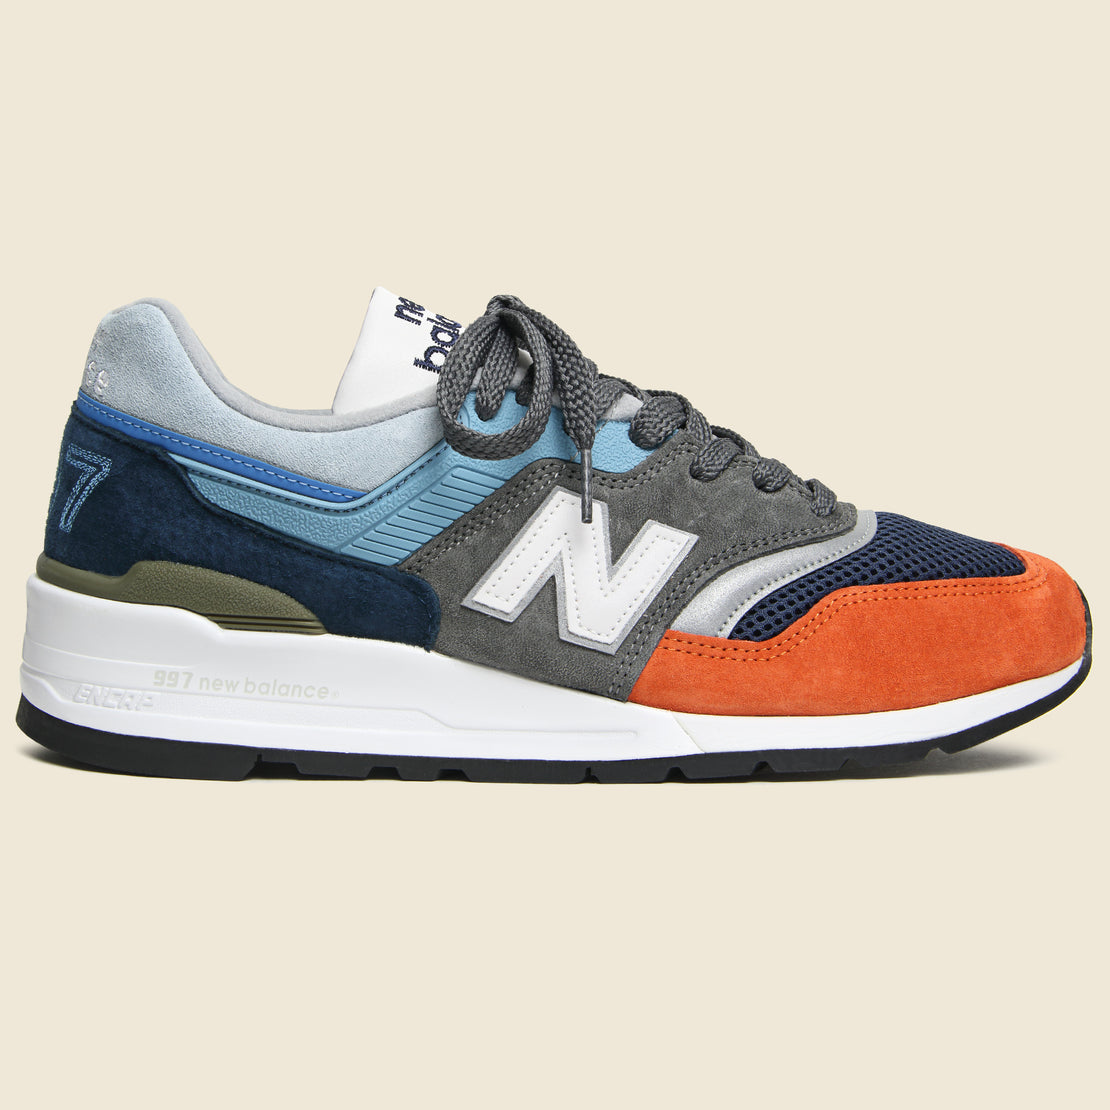 New Balance 997 Sneaker - Blue/Grey